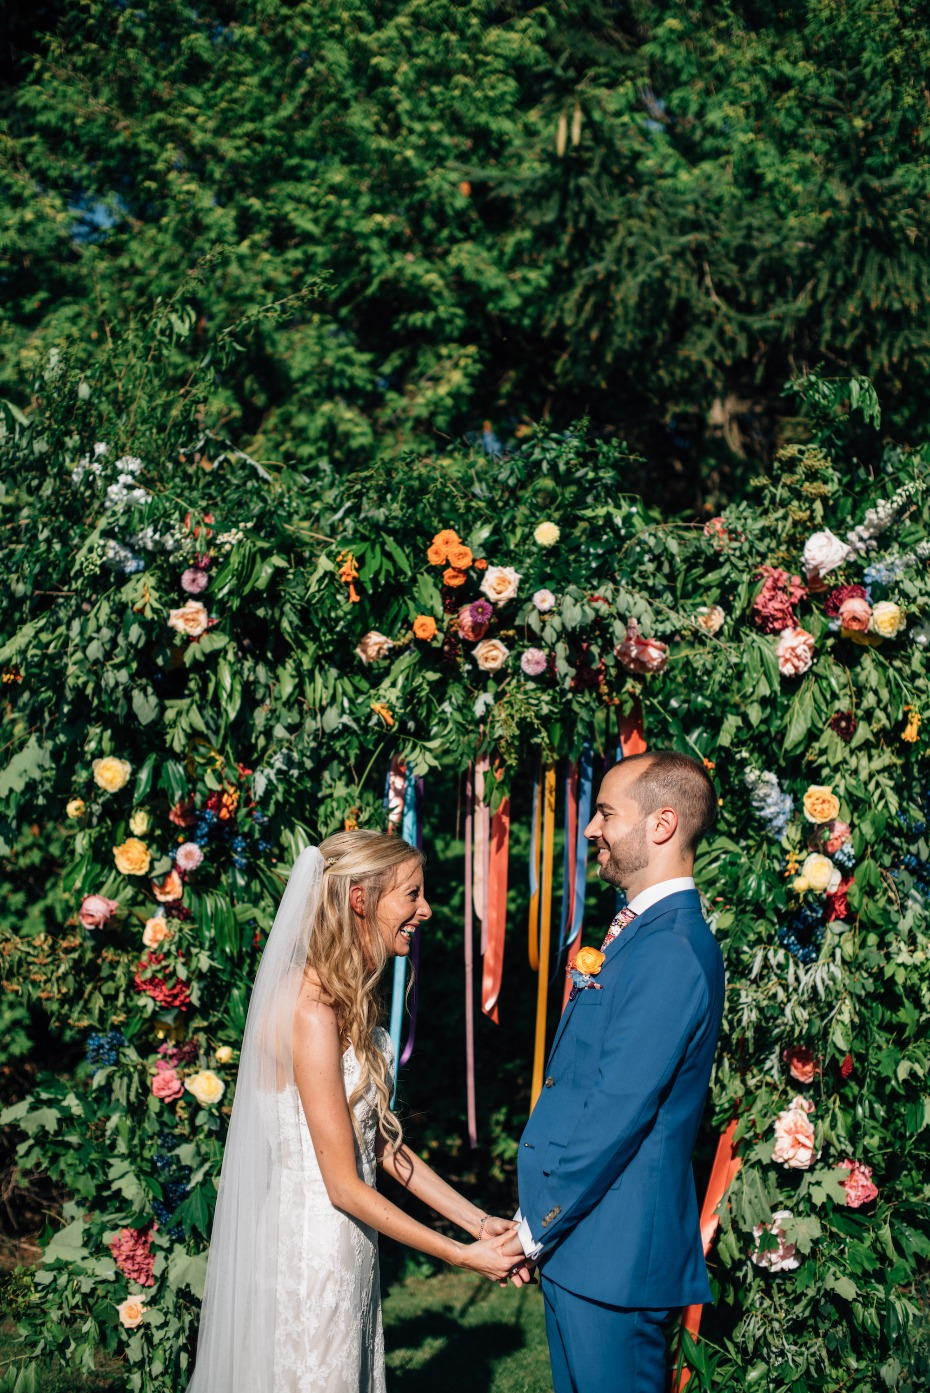 Flower arch with hanging ribbons